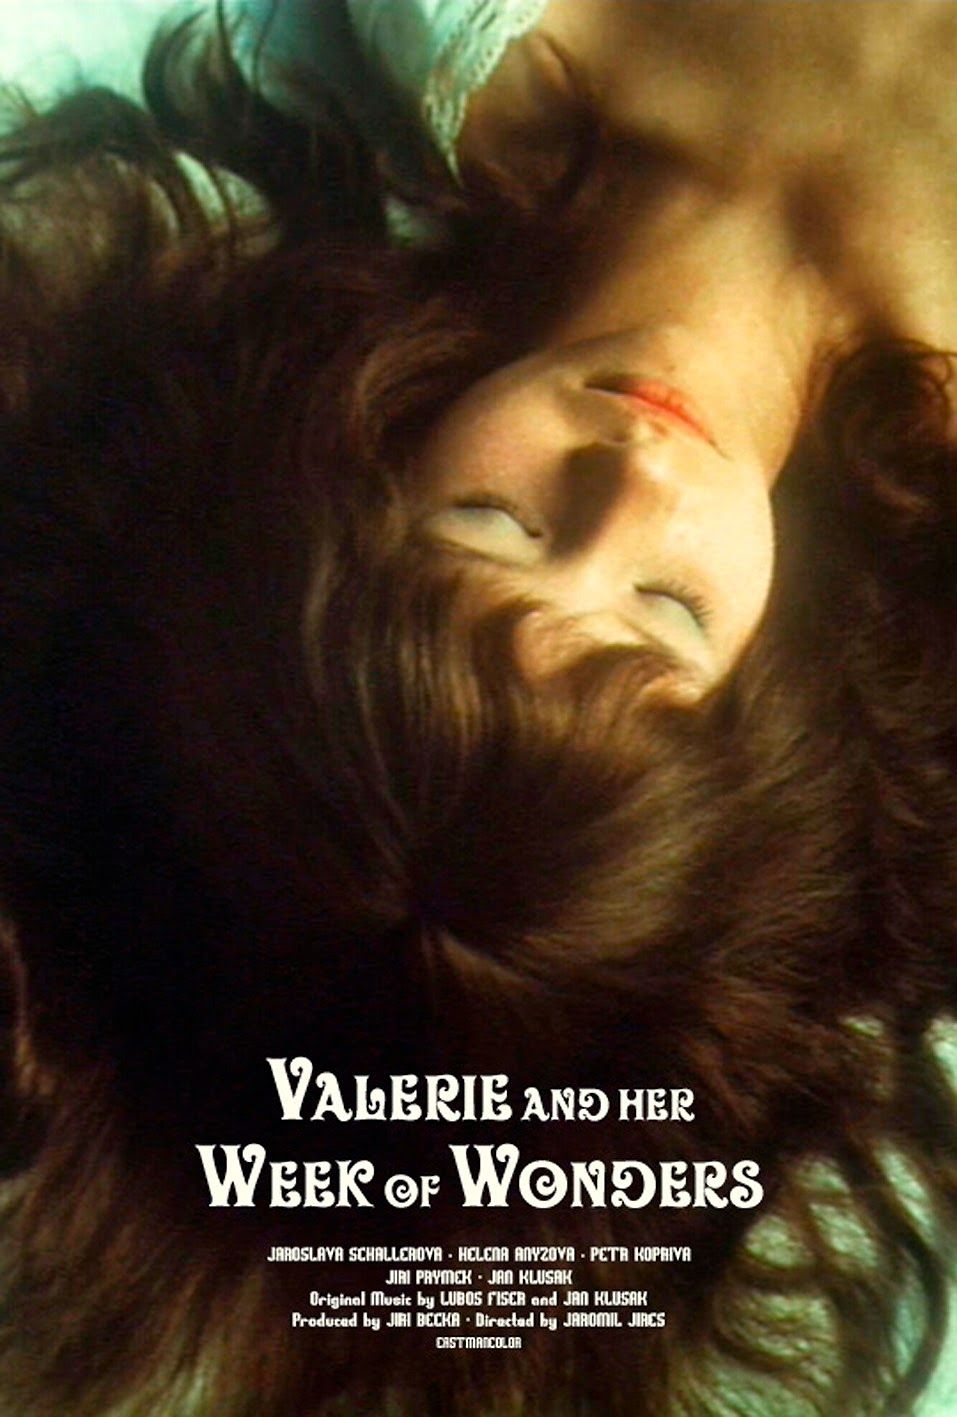 Valerie and Her Week of Wonders (1970) - Directed by: Jaromil JiresStarring: Jaroslava Schallerova, Helena Anyzovz, Petr KoprivaRated: NR (Suggested R for Nudity, Thematic Elements, and Two Scenes of Animal Cruelty)Running Time: 1 h 17 mTMM Score: 4 stars out of 5STRENGTHS: Directing, Strength of Themes, Production Design, Cinematography, Mis-En-SceneWEAKNESSES: Sexualizes a Thirteen Year Old Girl, Two Scenes of Animal Cruelty